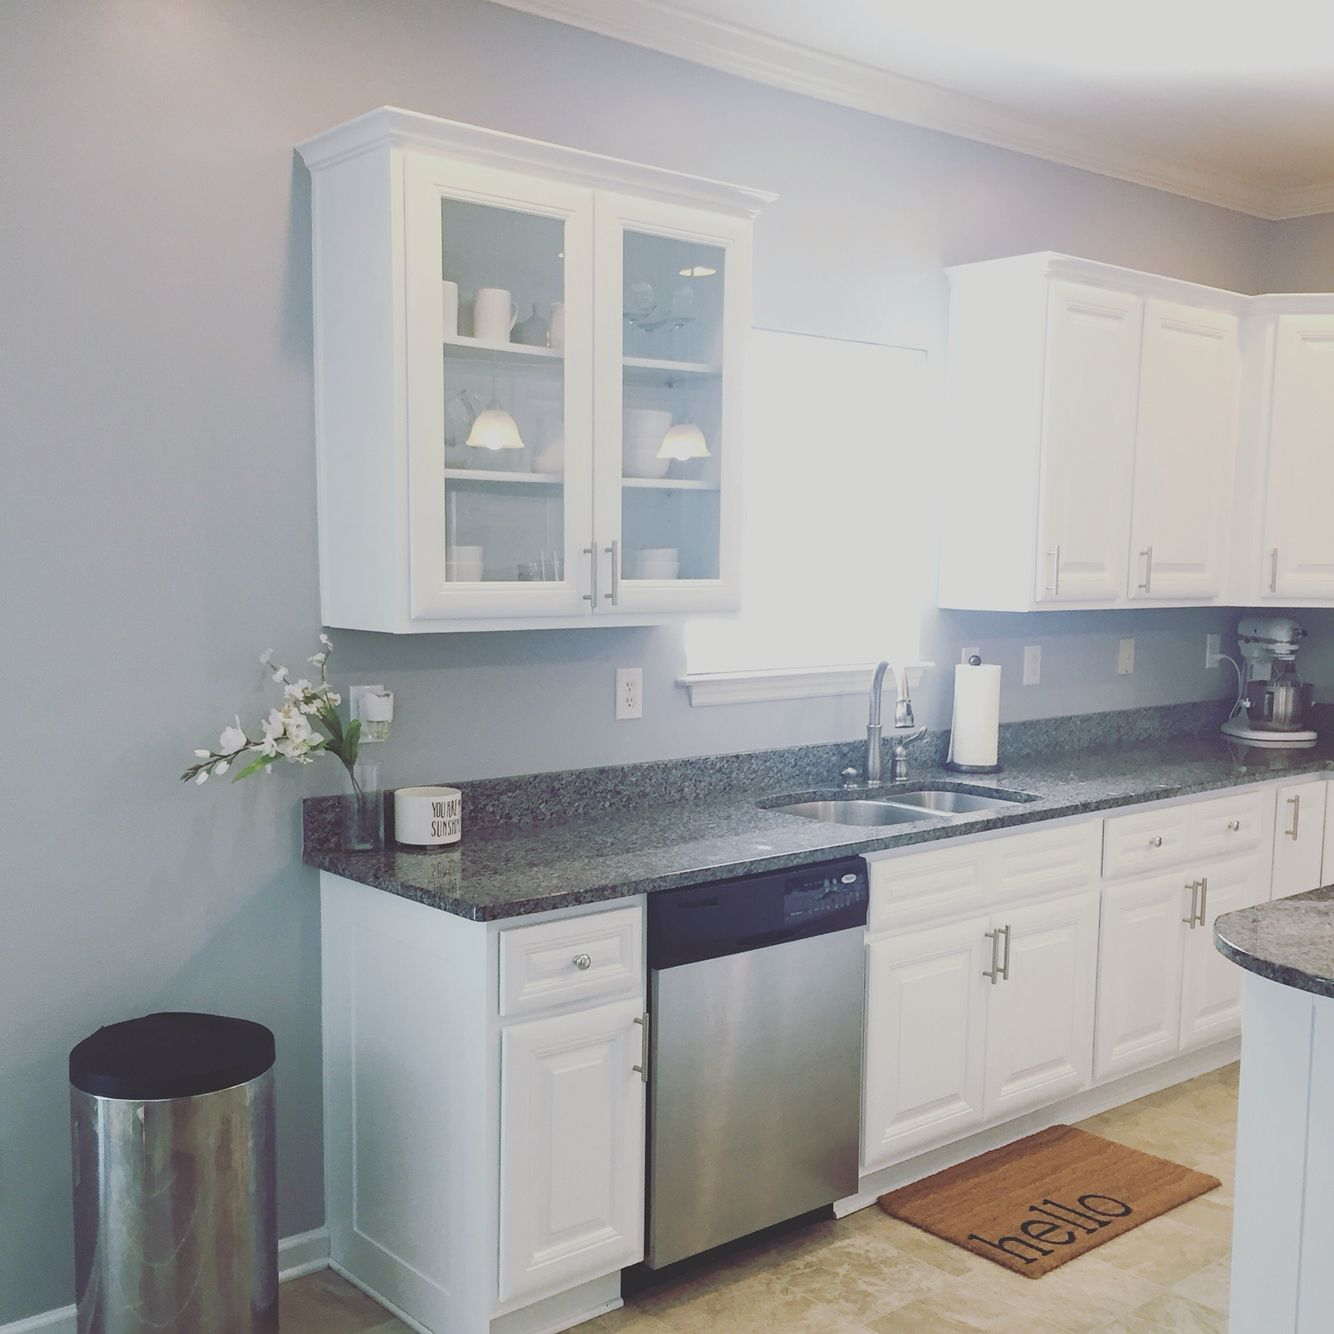 Newly refinished white kitchen cabinets in Benjamin Moore Snow ...